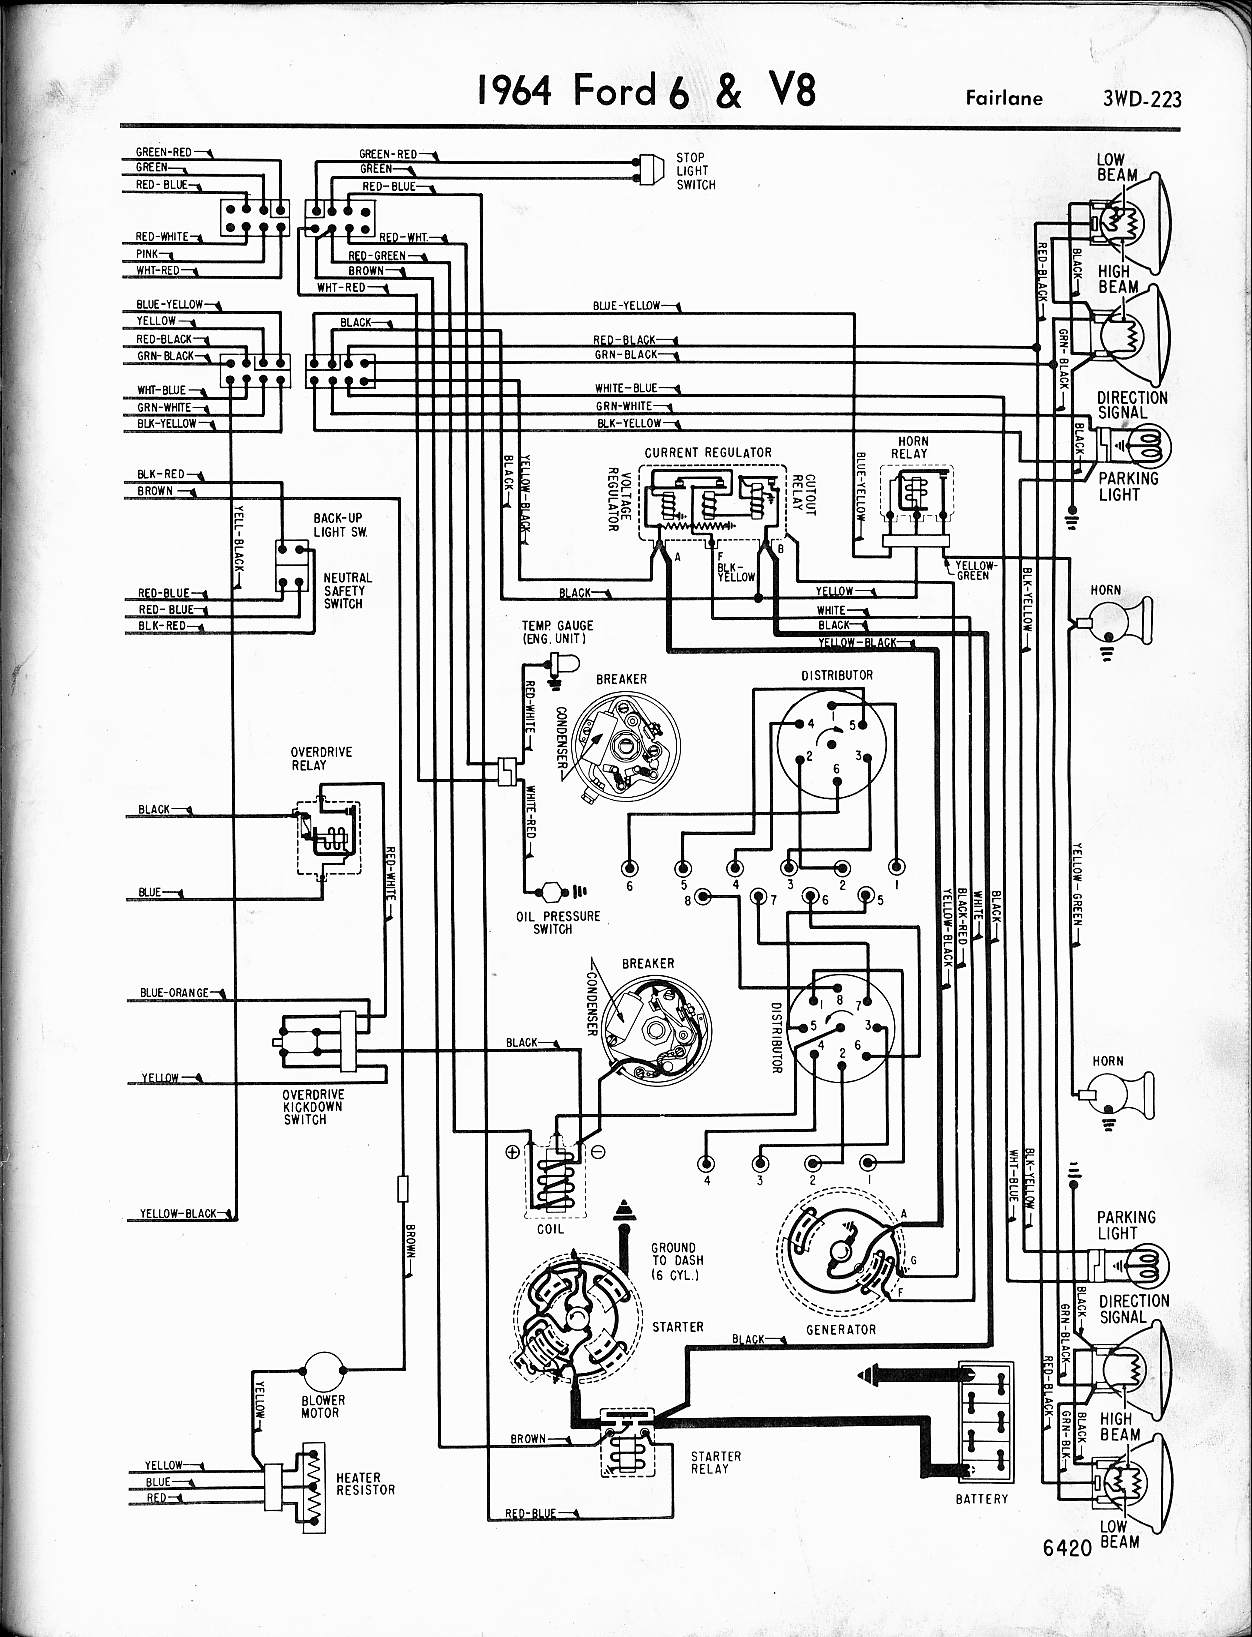 1966 Ford Truck Wiring Diagram - Wiring Diagram K9 Fan Wiring Diagram For F on